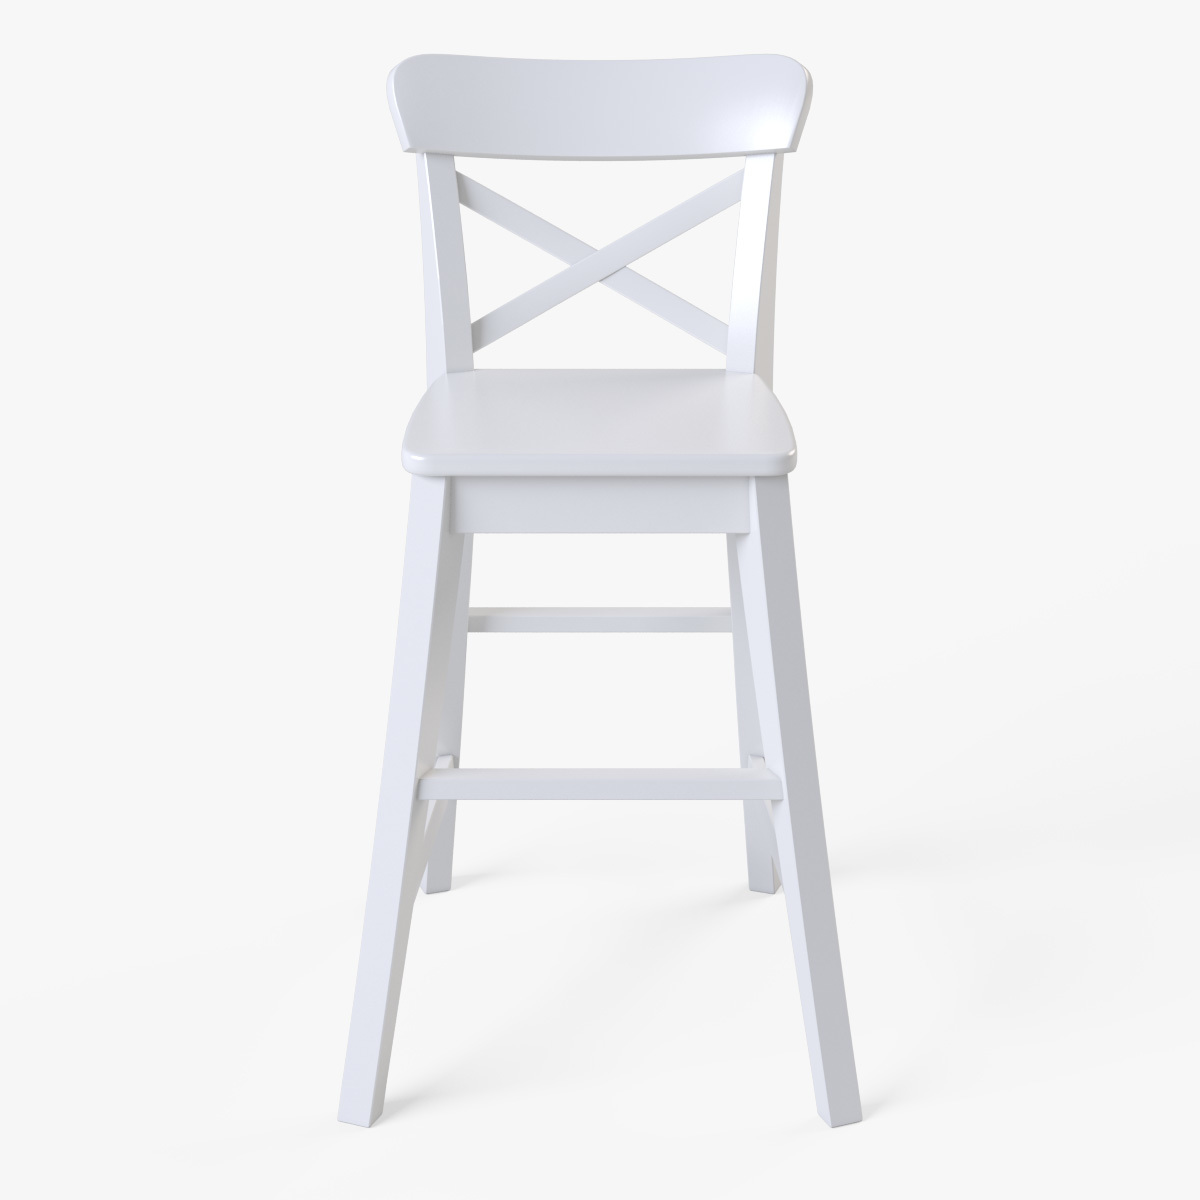 ikea junior chair posture without back ingolf white by markelos 3docean